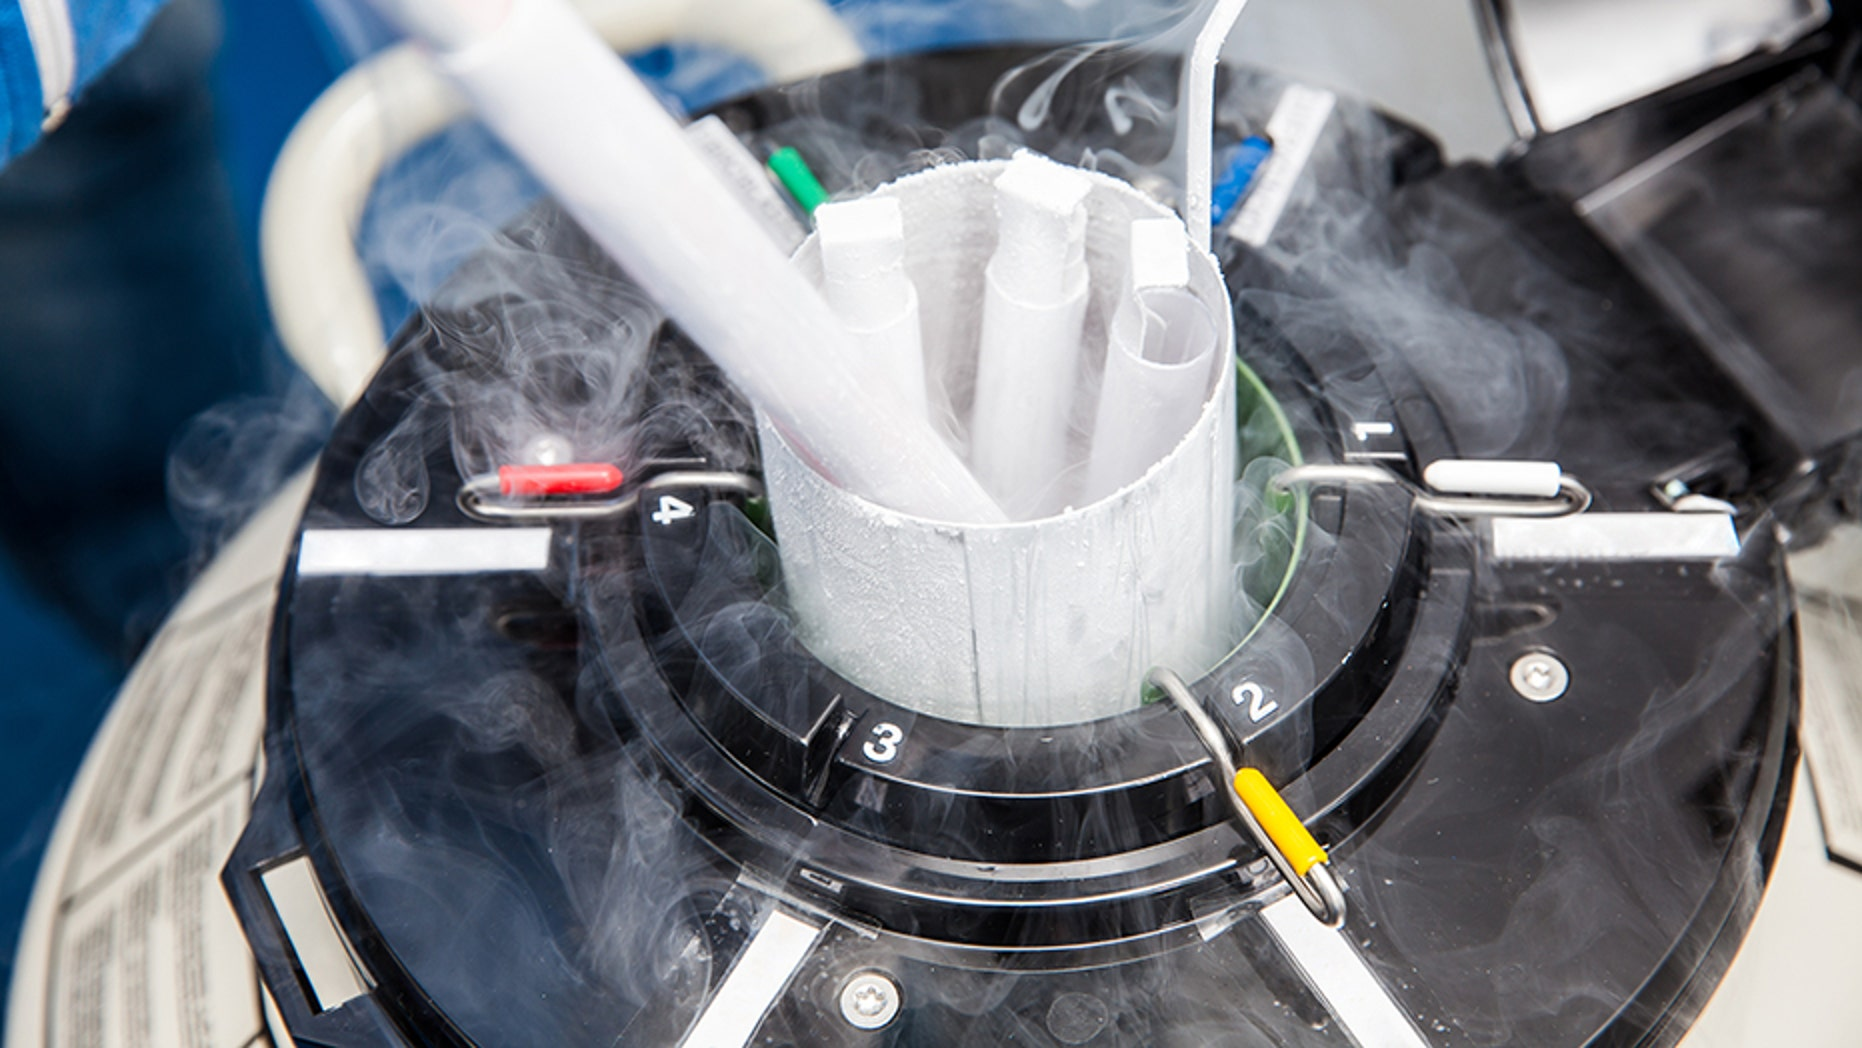 A liquid nitrogen tank at the clinic located outside Cleveland, where more than 2,000 frozen embryos and eggs are stored, unexpectedly heated up.